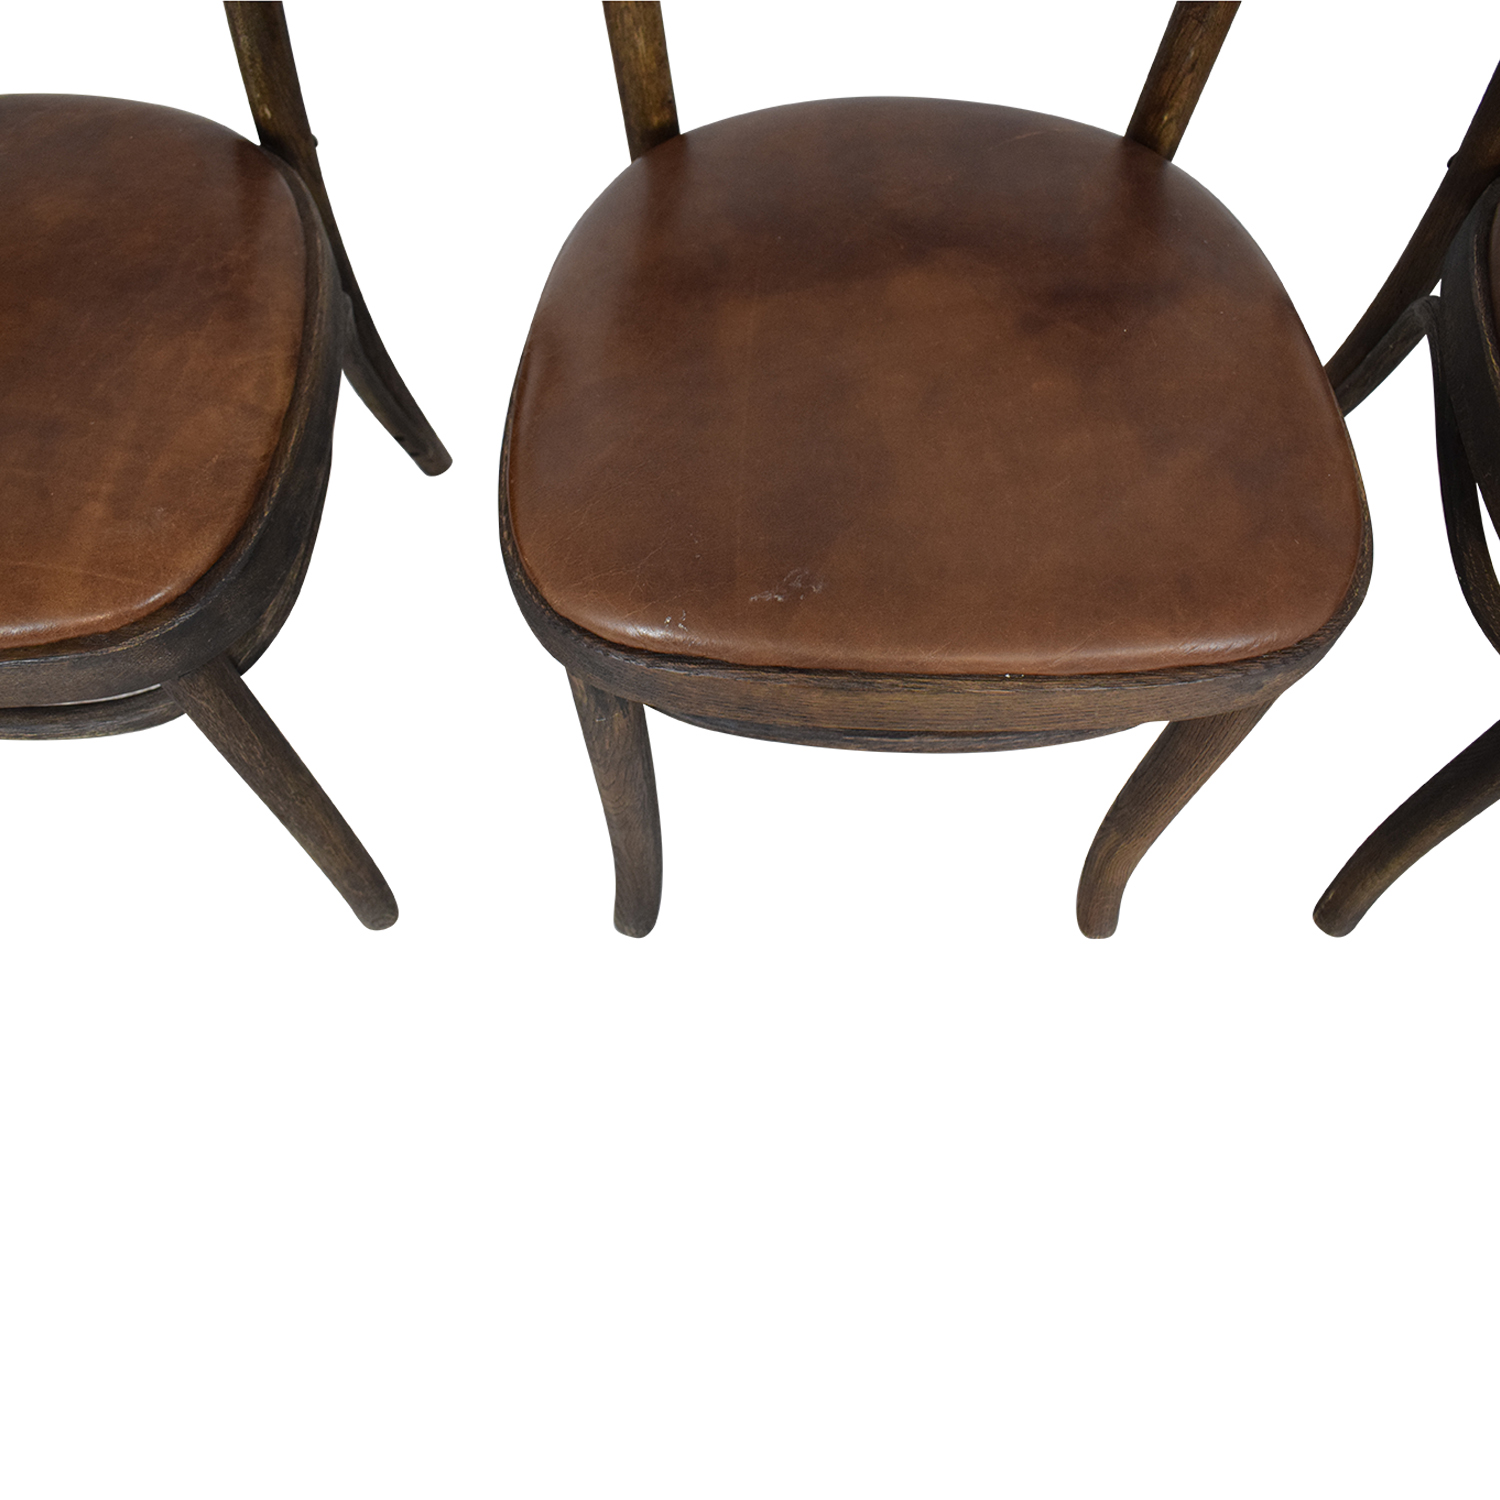 Restoration Hardware Restoration Hardware Vienna Cafe Leather Side Chairs Dining Chairs